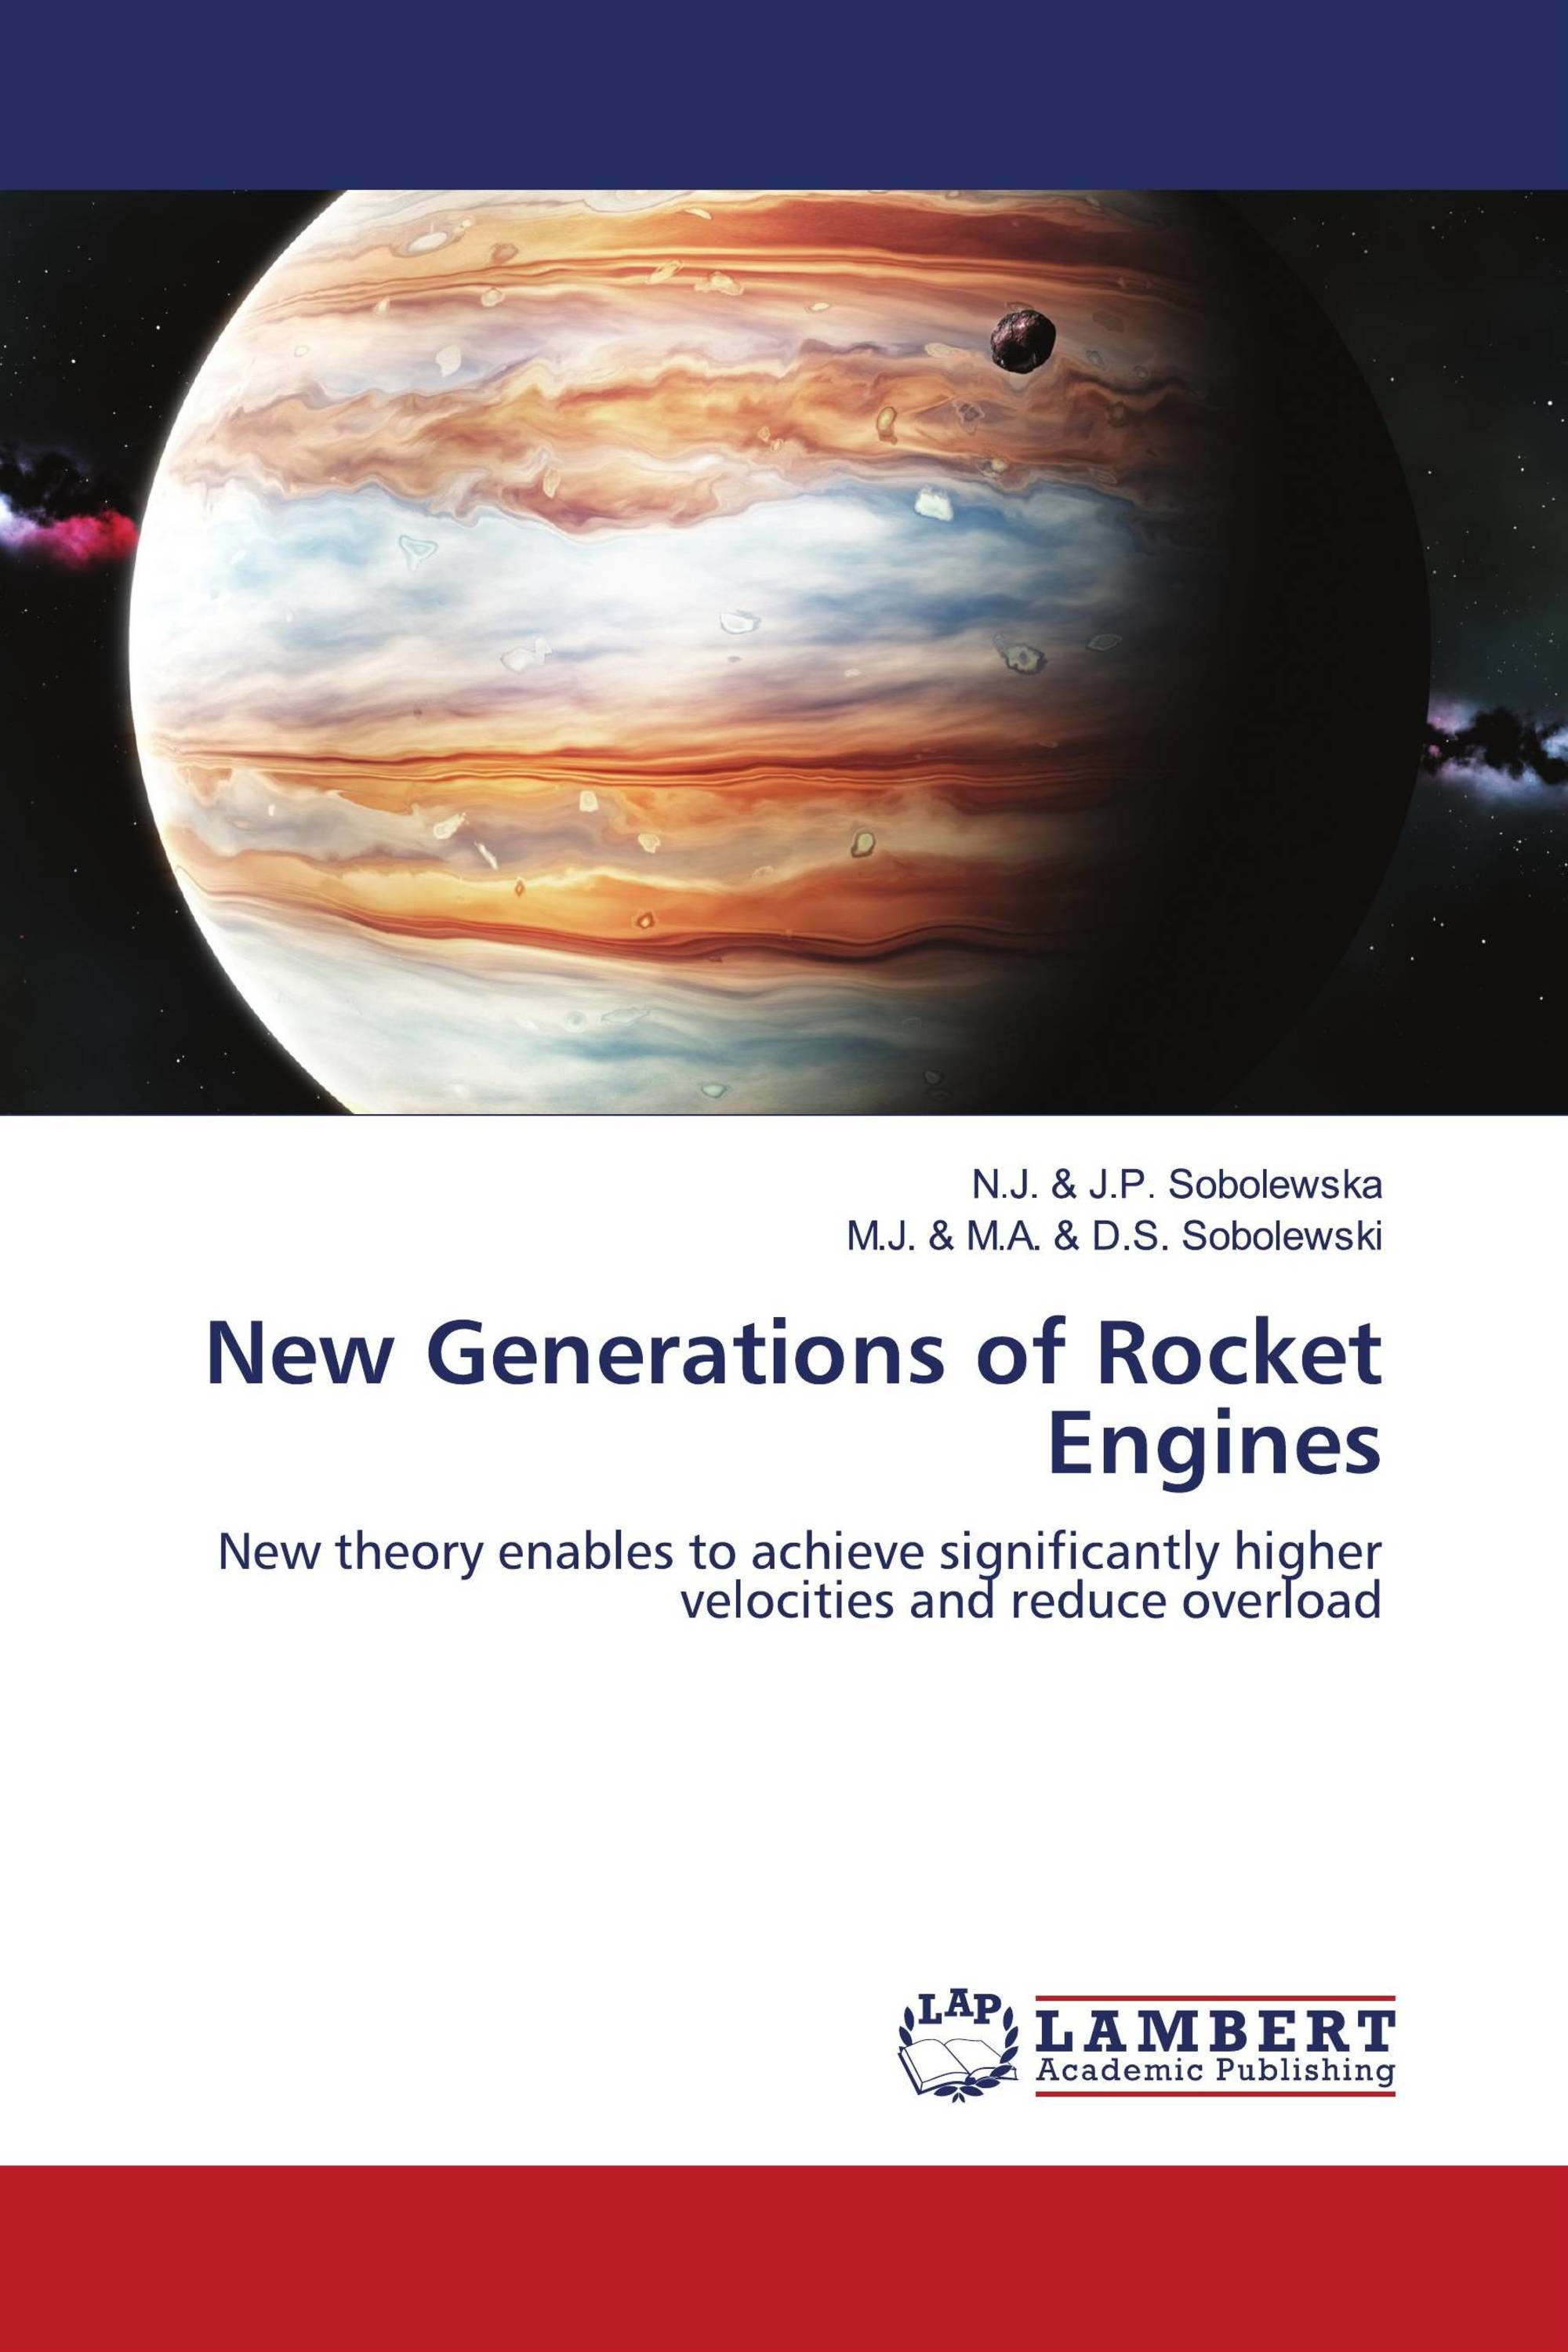 New Generations of Rocket Engines